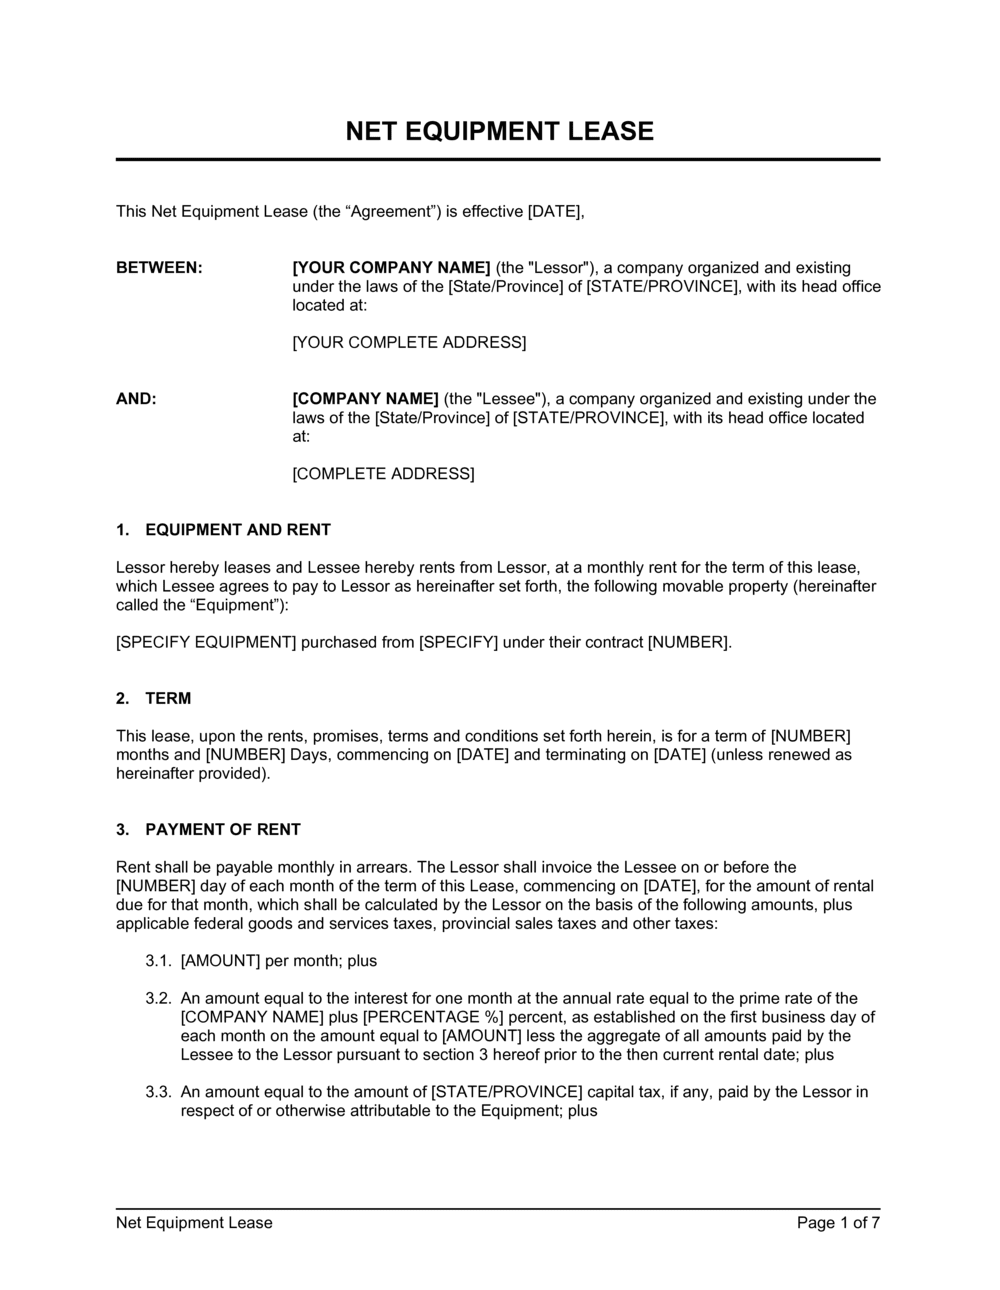 Business-in-a-Box's Net Equipment Lease Template